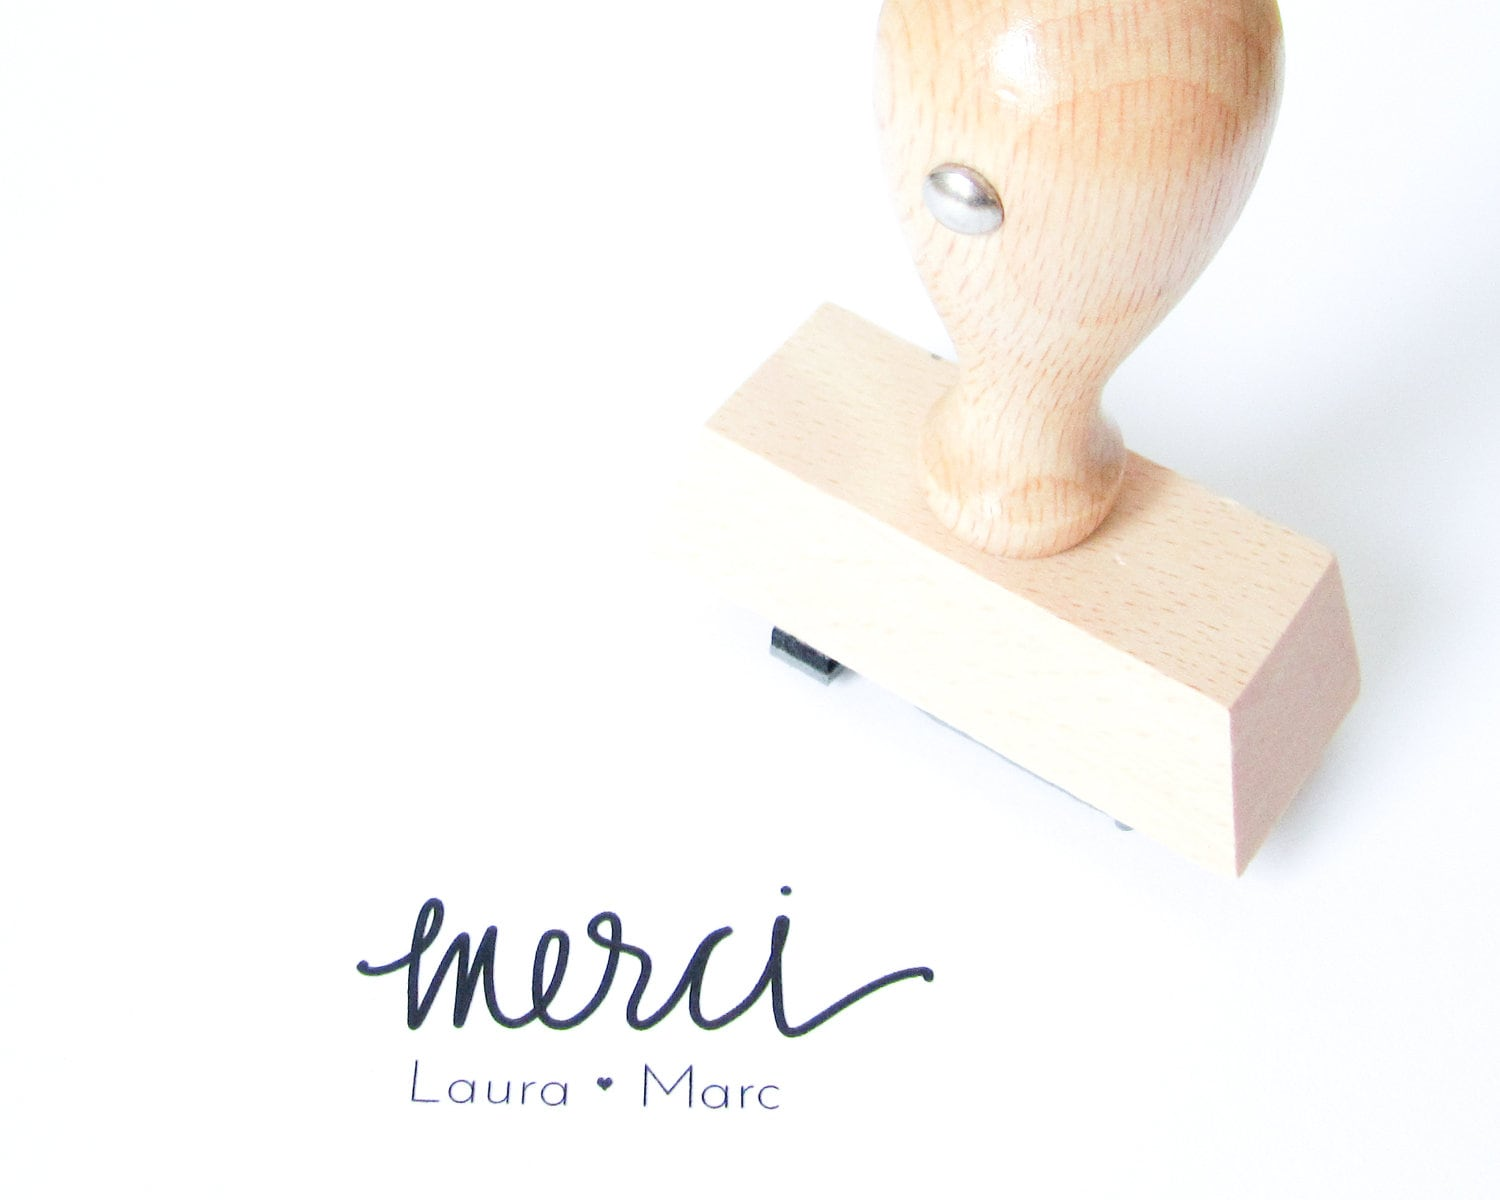 Personalized Wedding Calligraphy Merci Stamp Handwritten